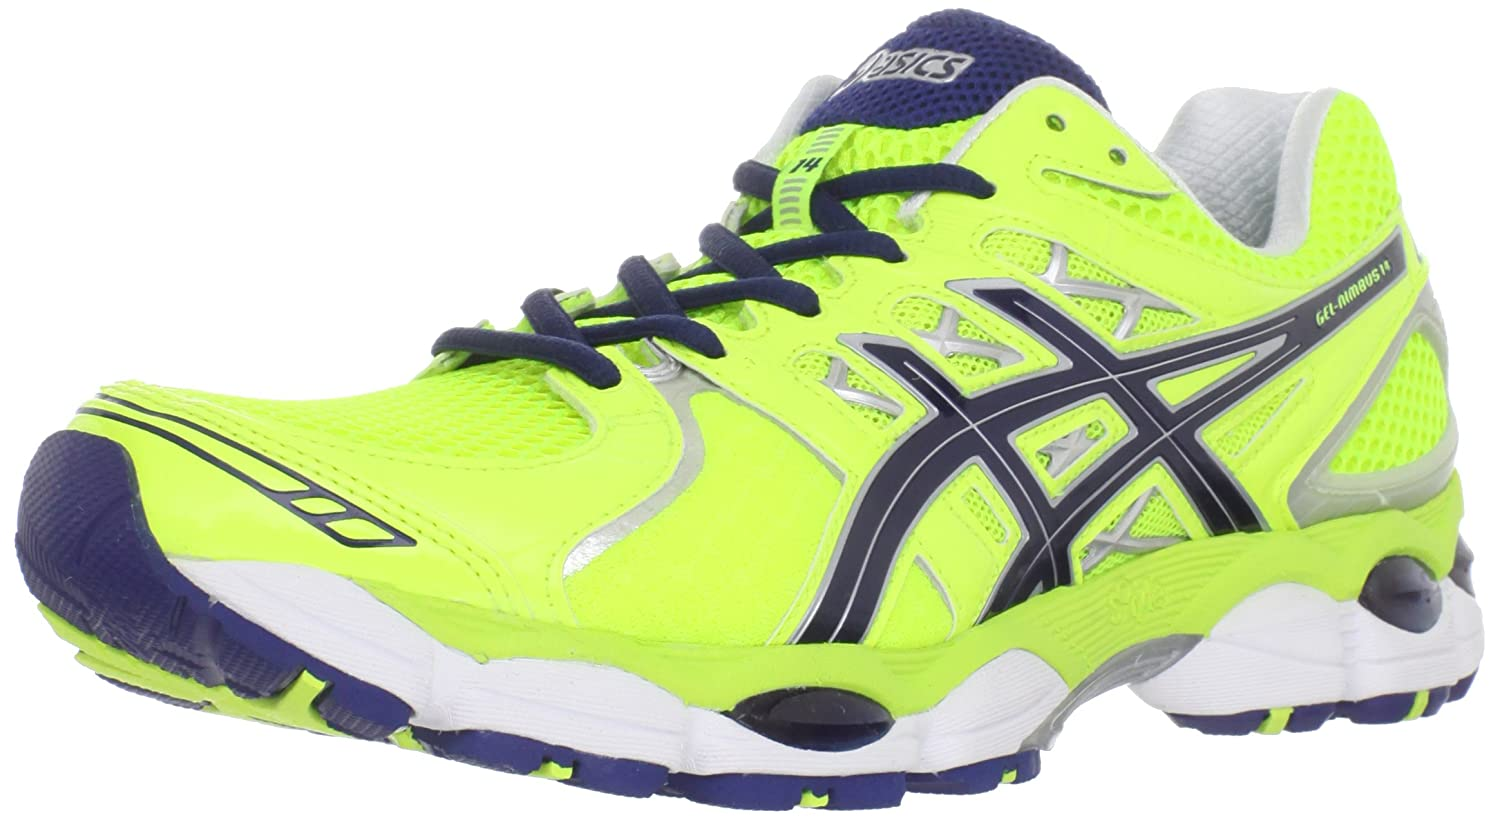 asics shoes boys 7th birthday ideas 654735